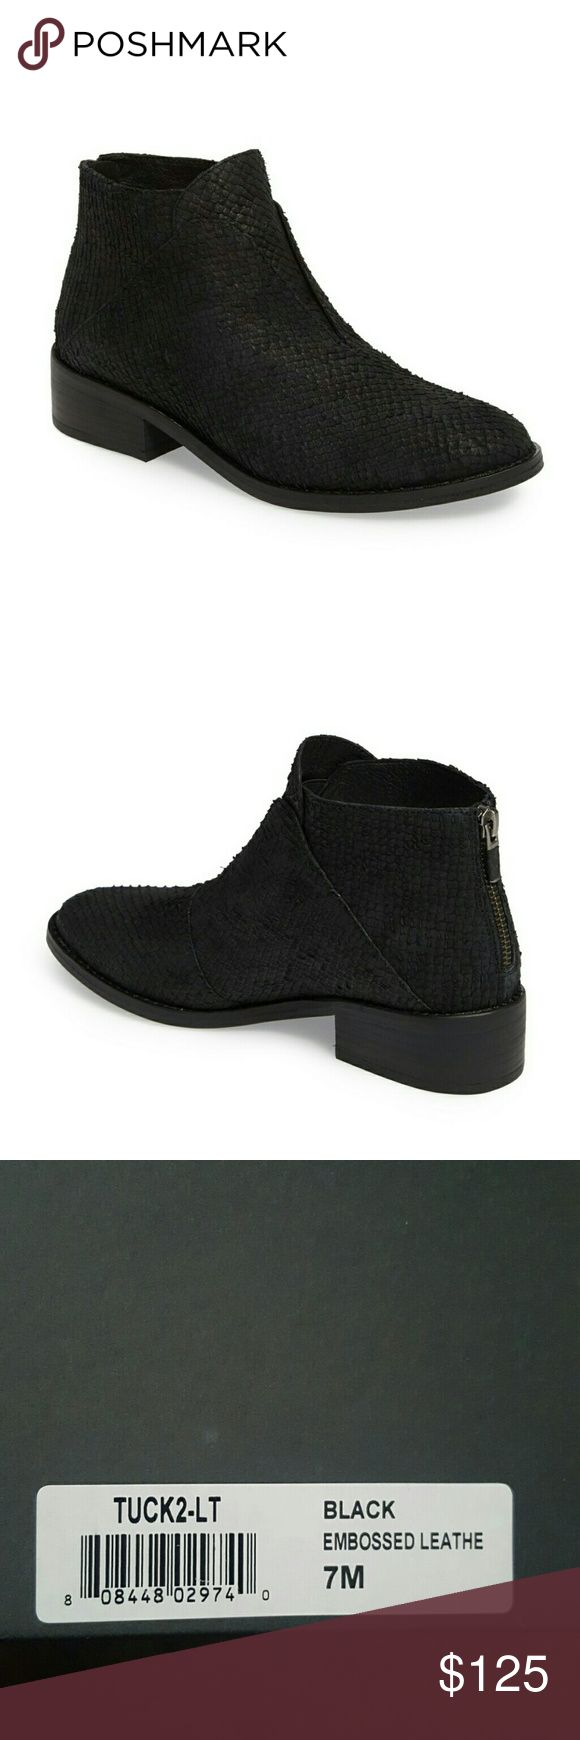 """Eileen Fisher Black Tuck Embossed Leather Size 7 M Brand new with Box. Nevet worn but the bottom of the shoes has a marking from the sticker. tag.   """" Laser-textured leather and a boldly notched vamp define this distinctive bootie outfitted with a convenient back zipper and a modest block heel. - 1 1/4"""" heel - 3 1/2"""" shaft - Back zip closure - Padded footbed - Leather upper, lining and sole - Imported"""" Eileen Fisher Shoes Ankle Boots & Booties"""